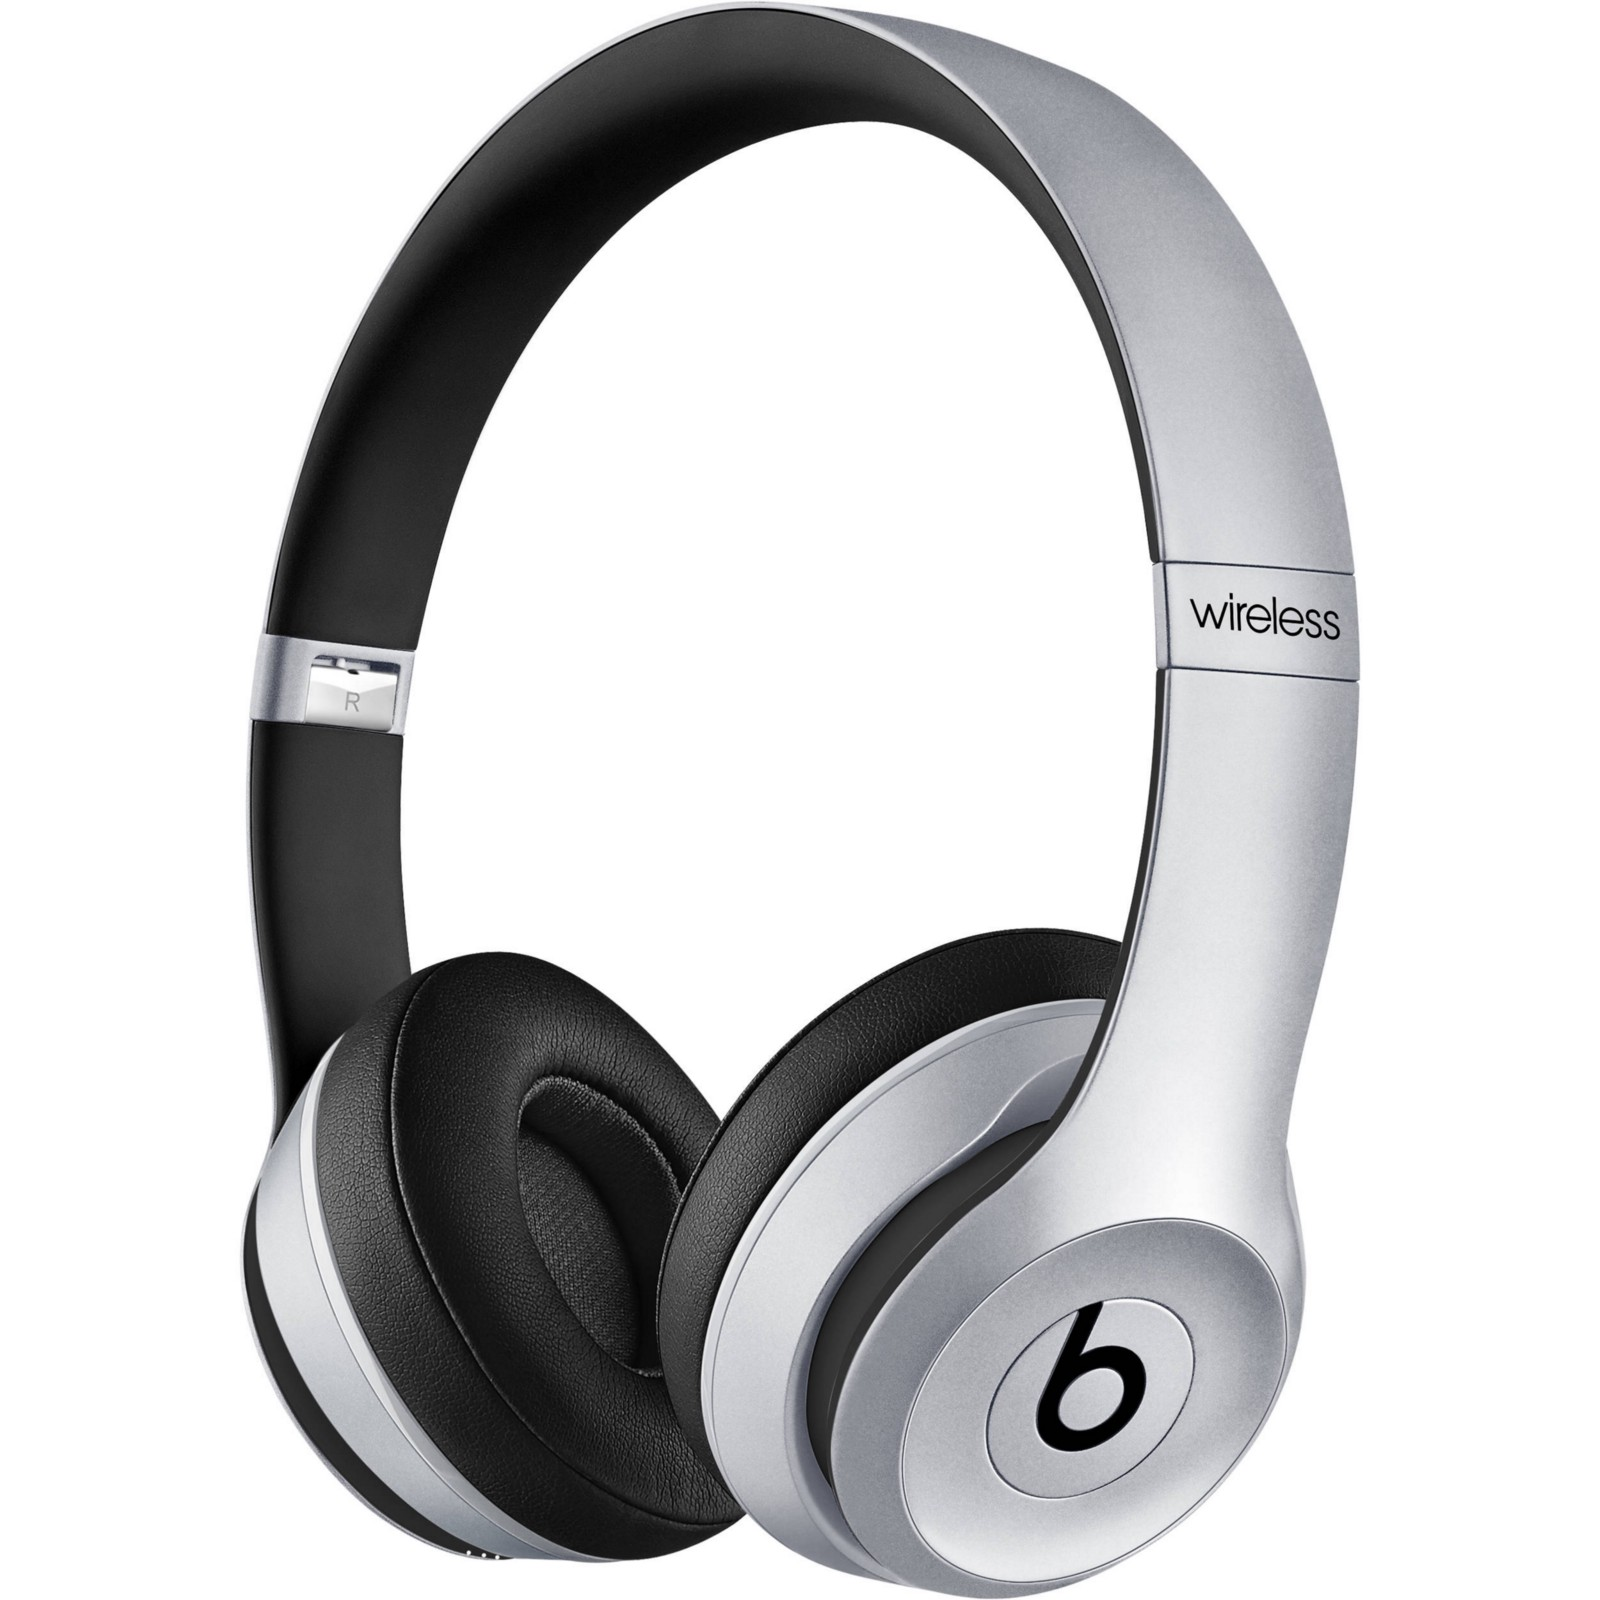 Beats Solo 2 Wireless Review: Don\'t Buy them At Full Price